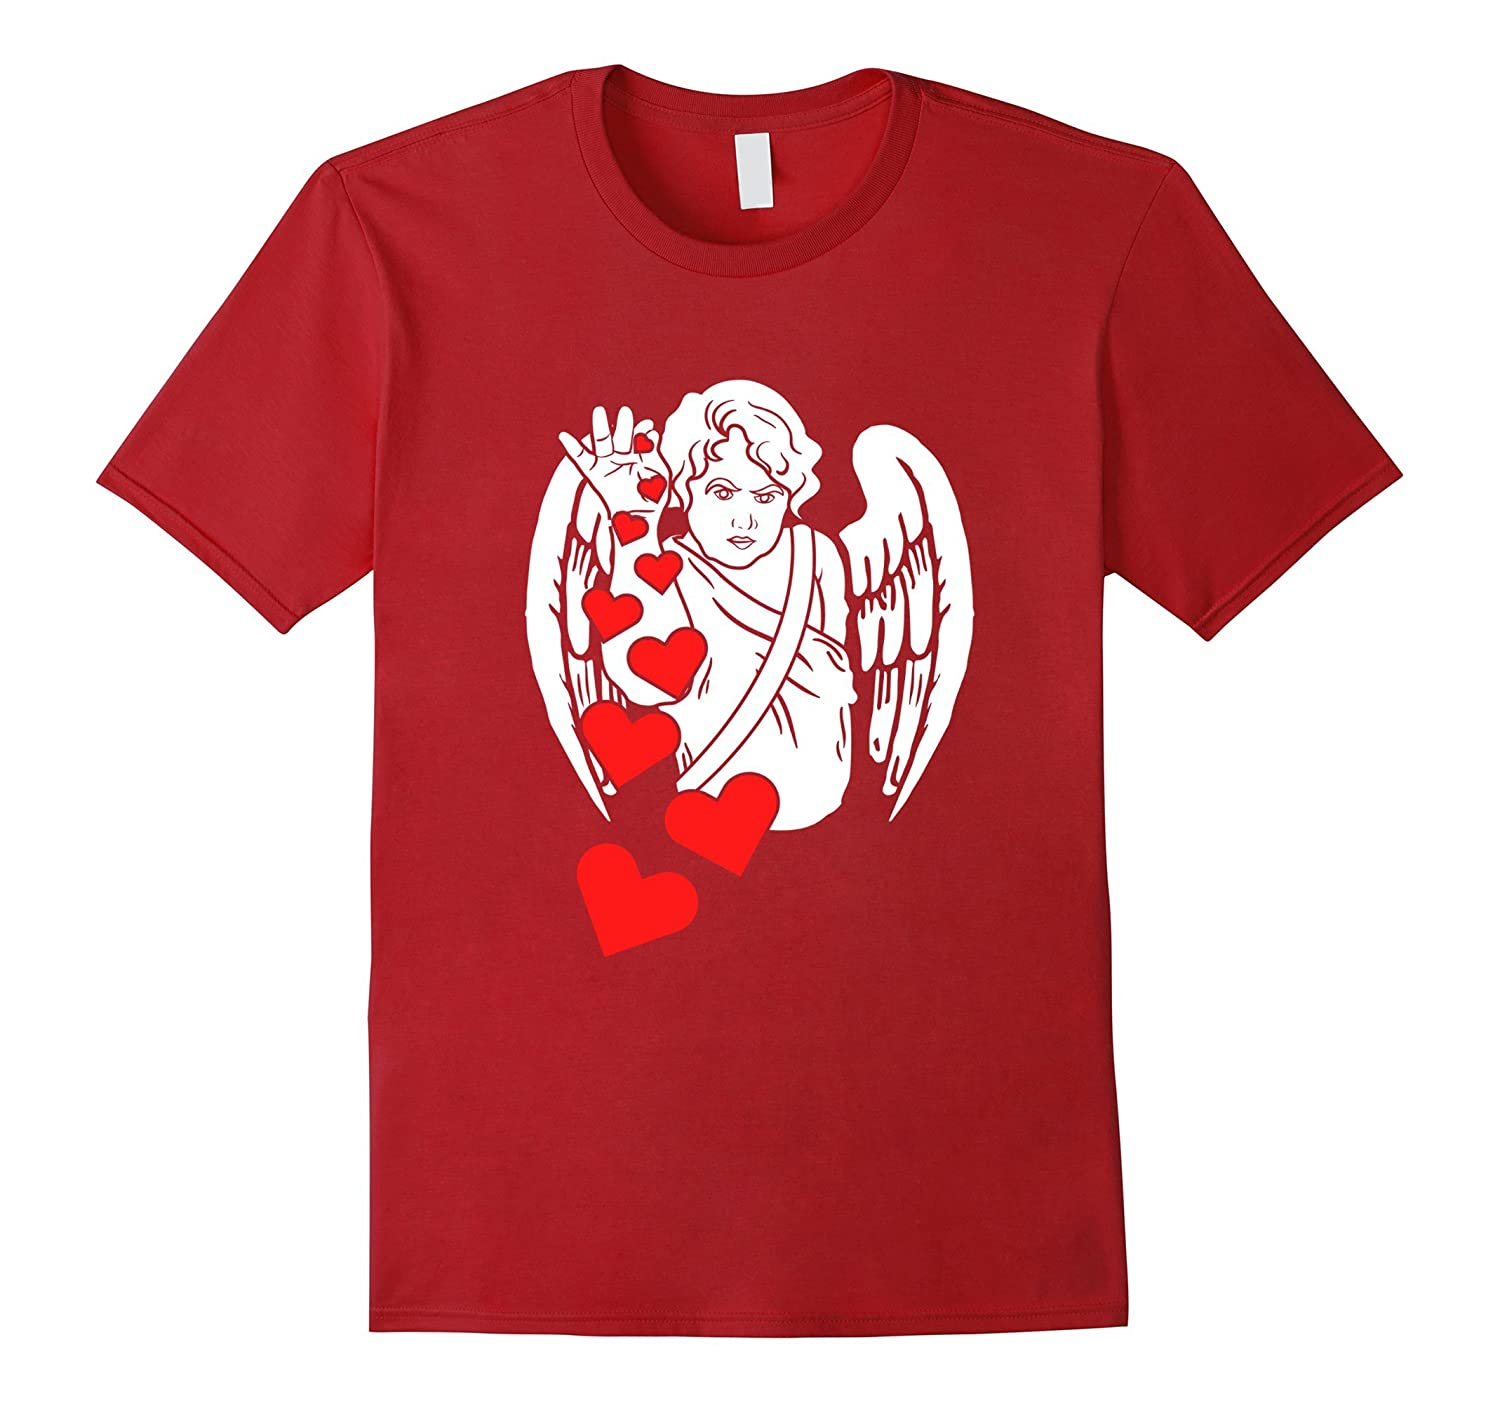 Funny Valentine's Day T-shirt Love Matching Couples Gift